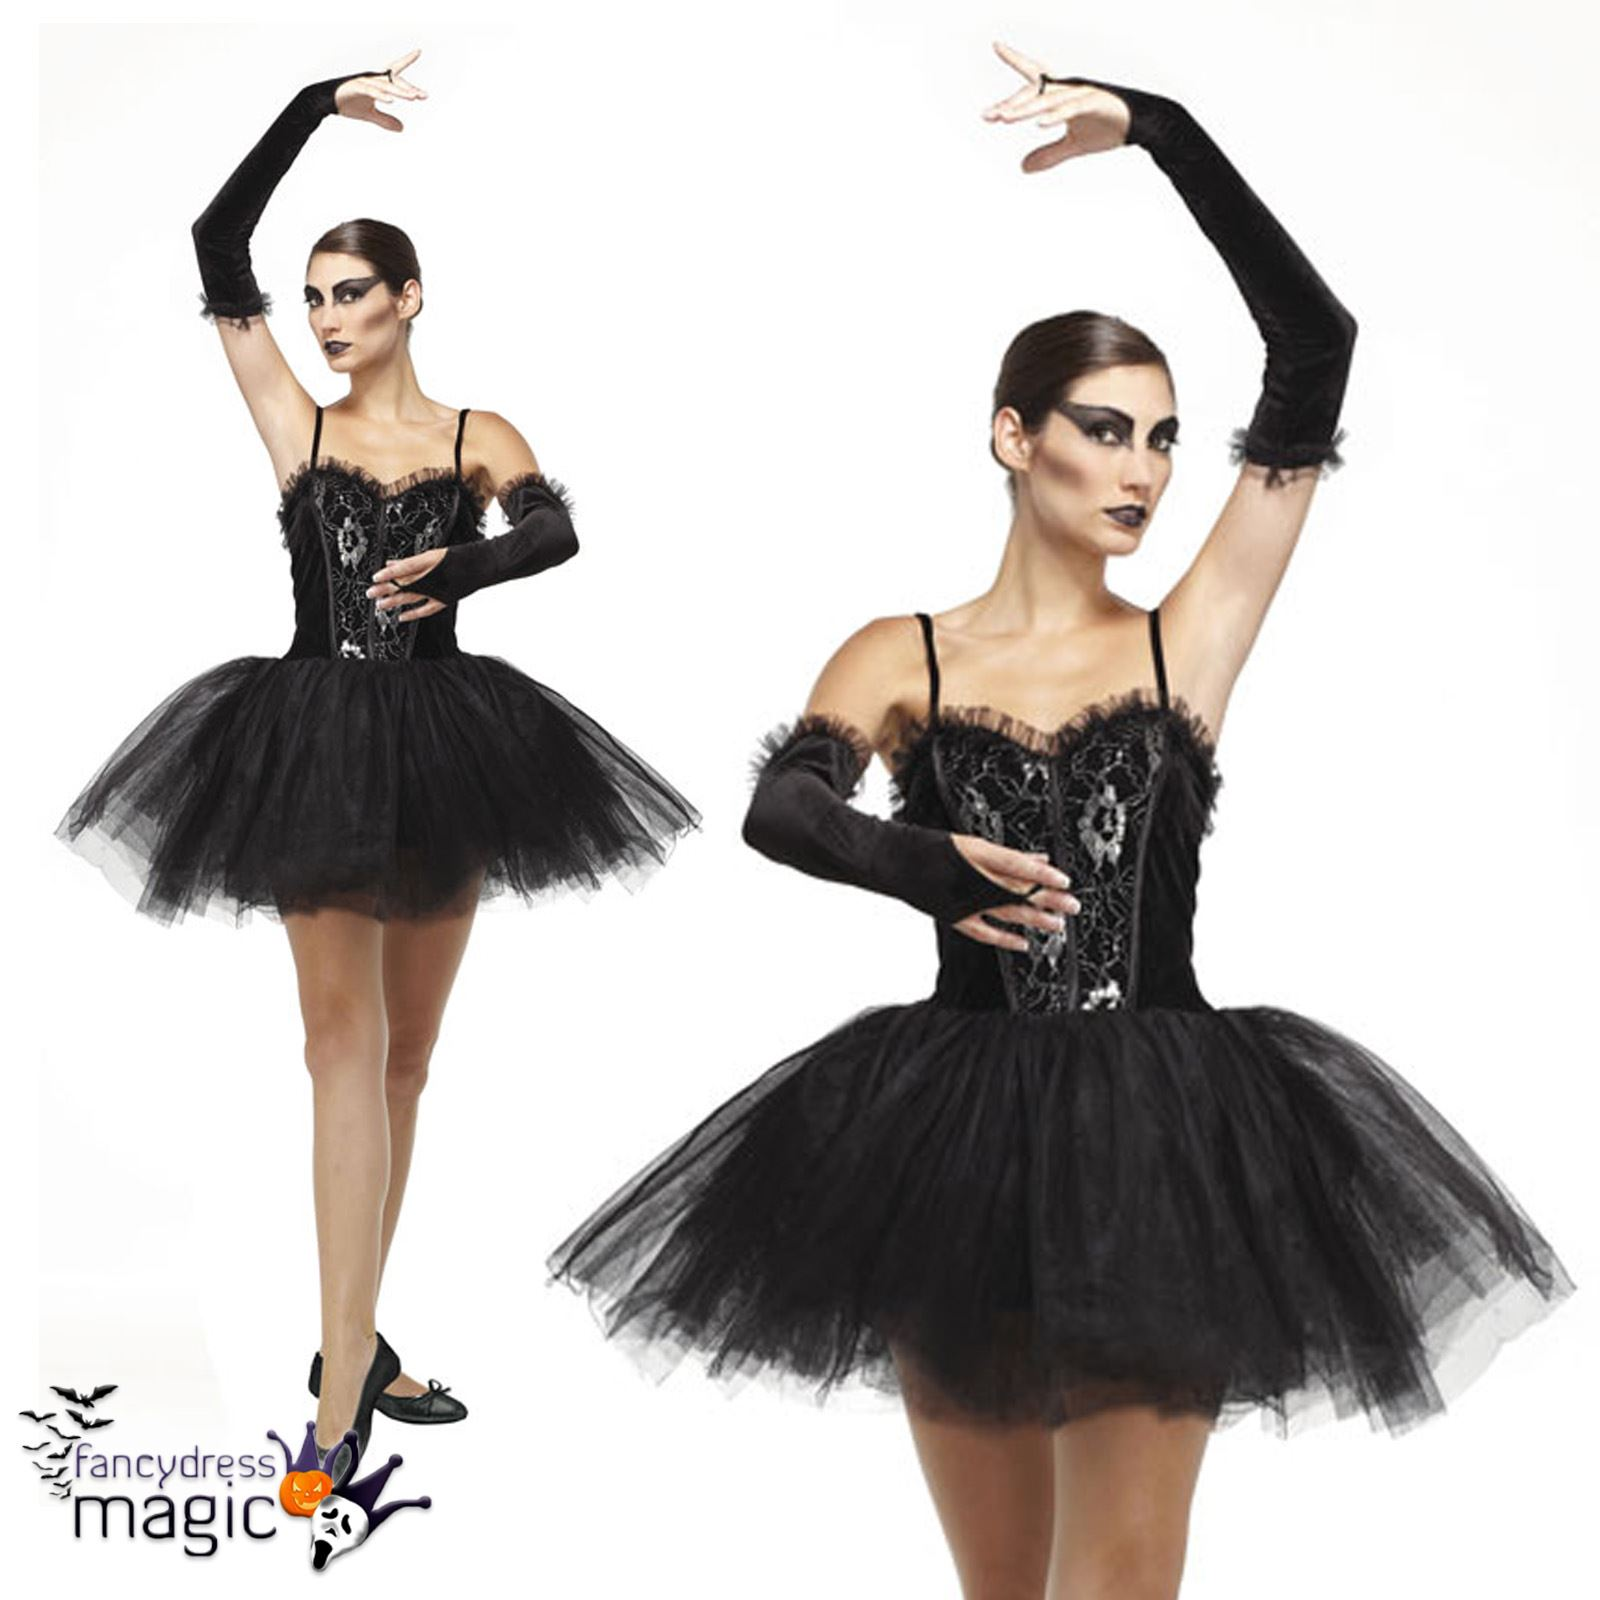 Gothic Adults Ladies Ballerina Black Swan Tutu Fallen